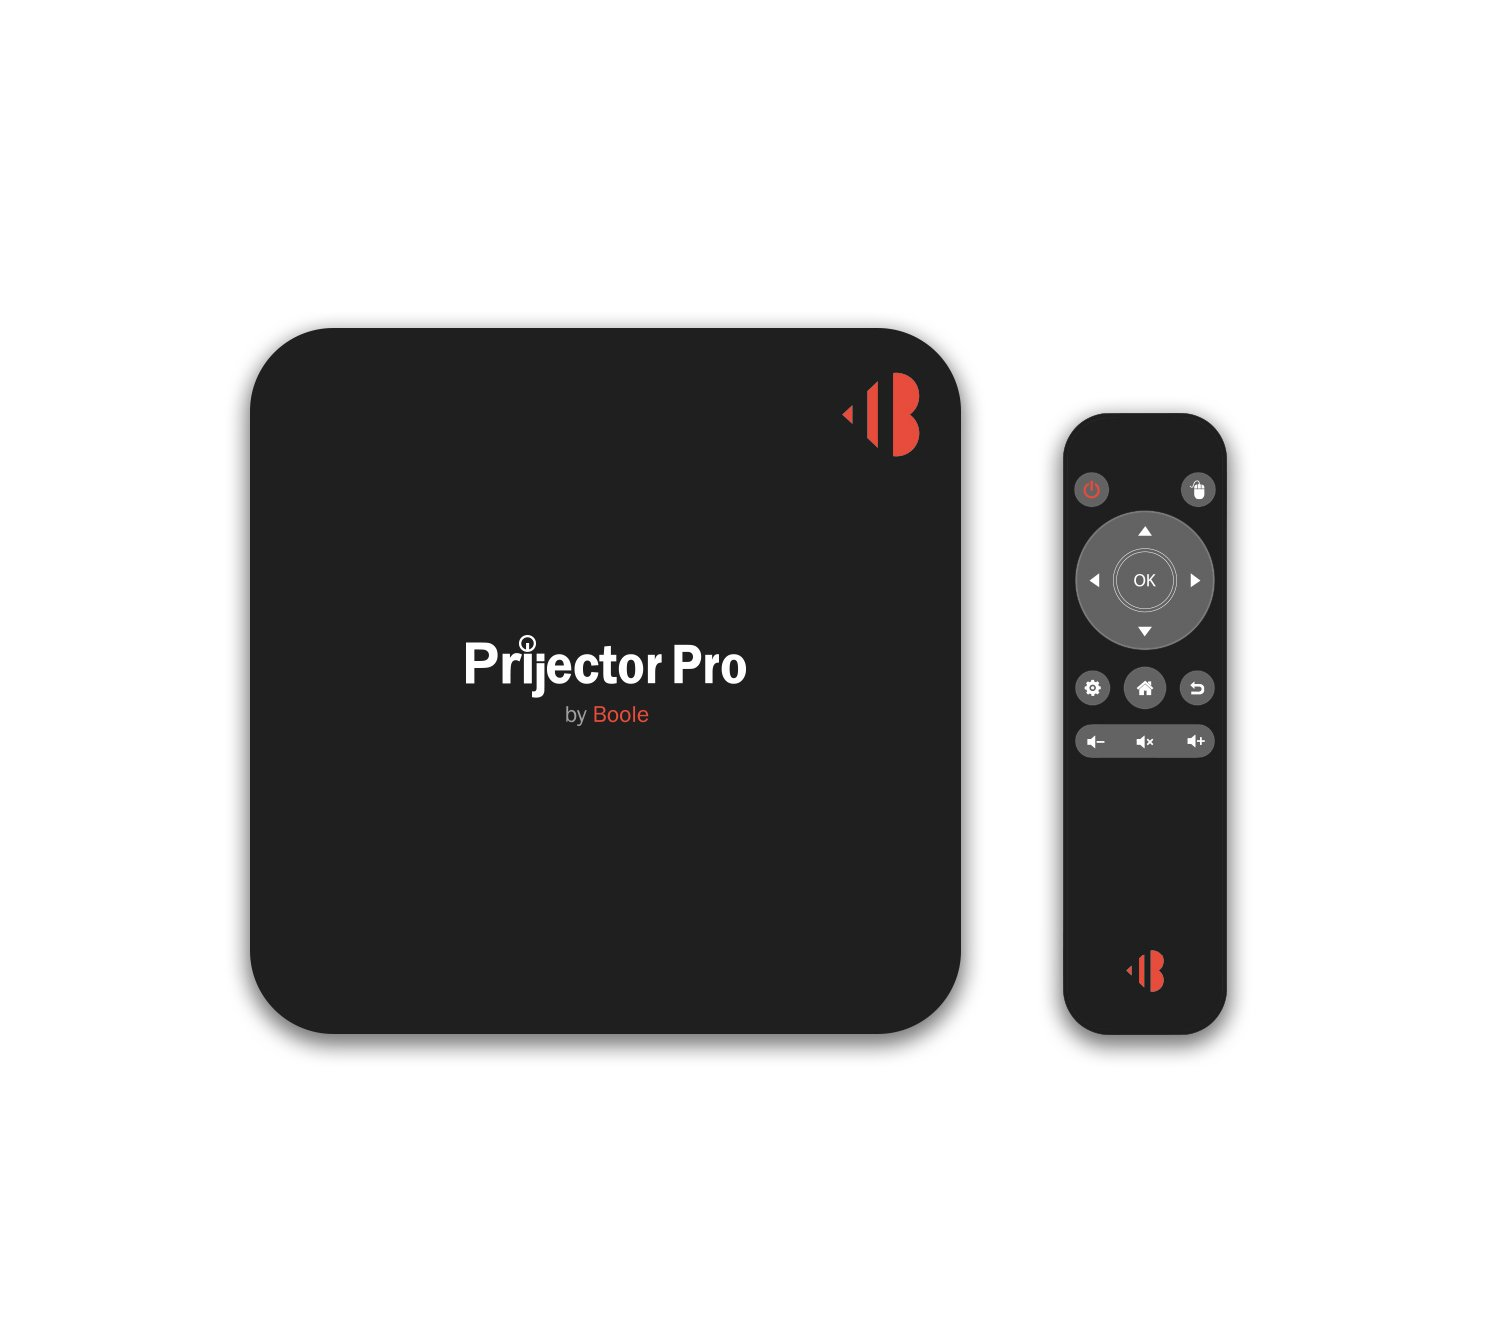 Prijector Pro- Wireless HDMI Full Screen Mirroring From any Device (In 3 Seconds) / Runs Video Conferencing Apps / Guest Internet Access.